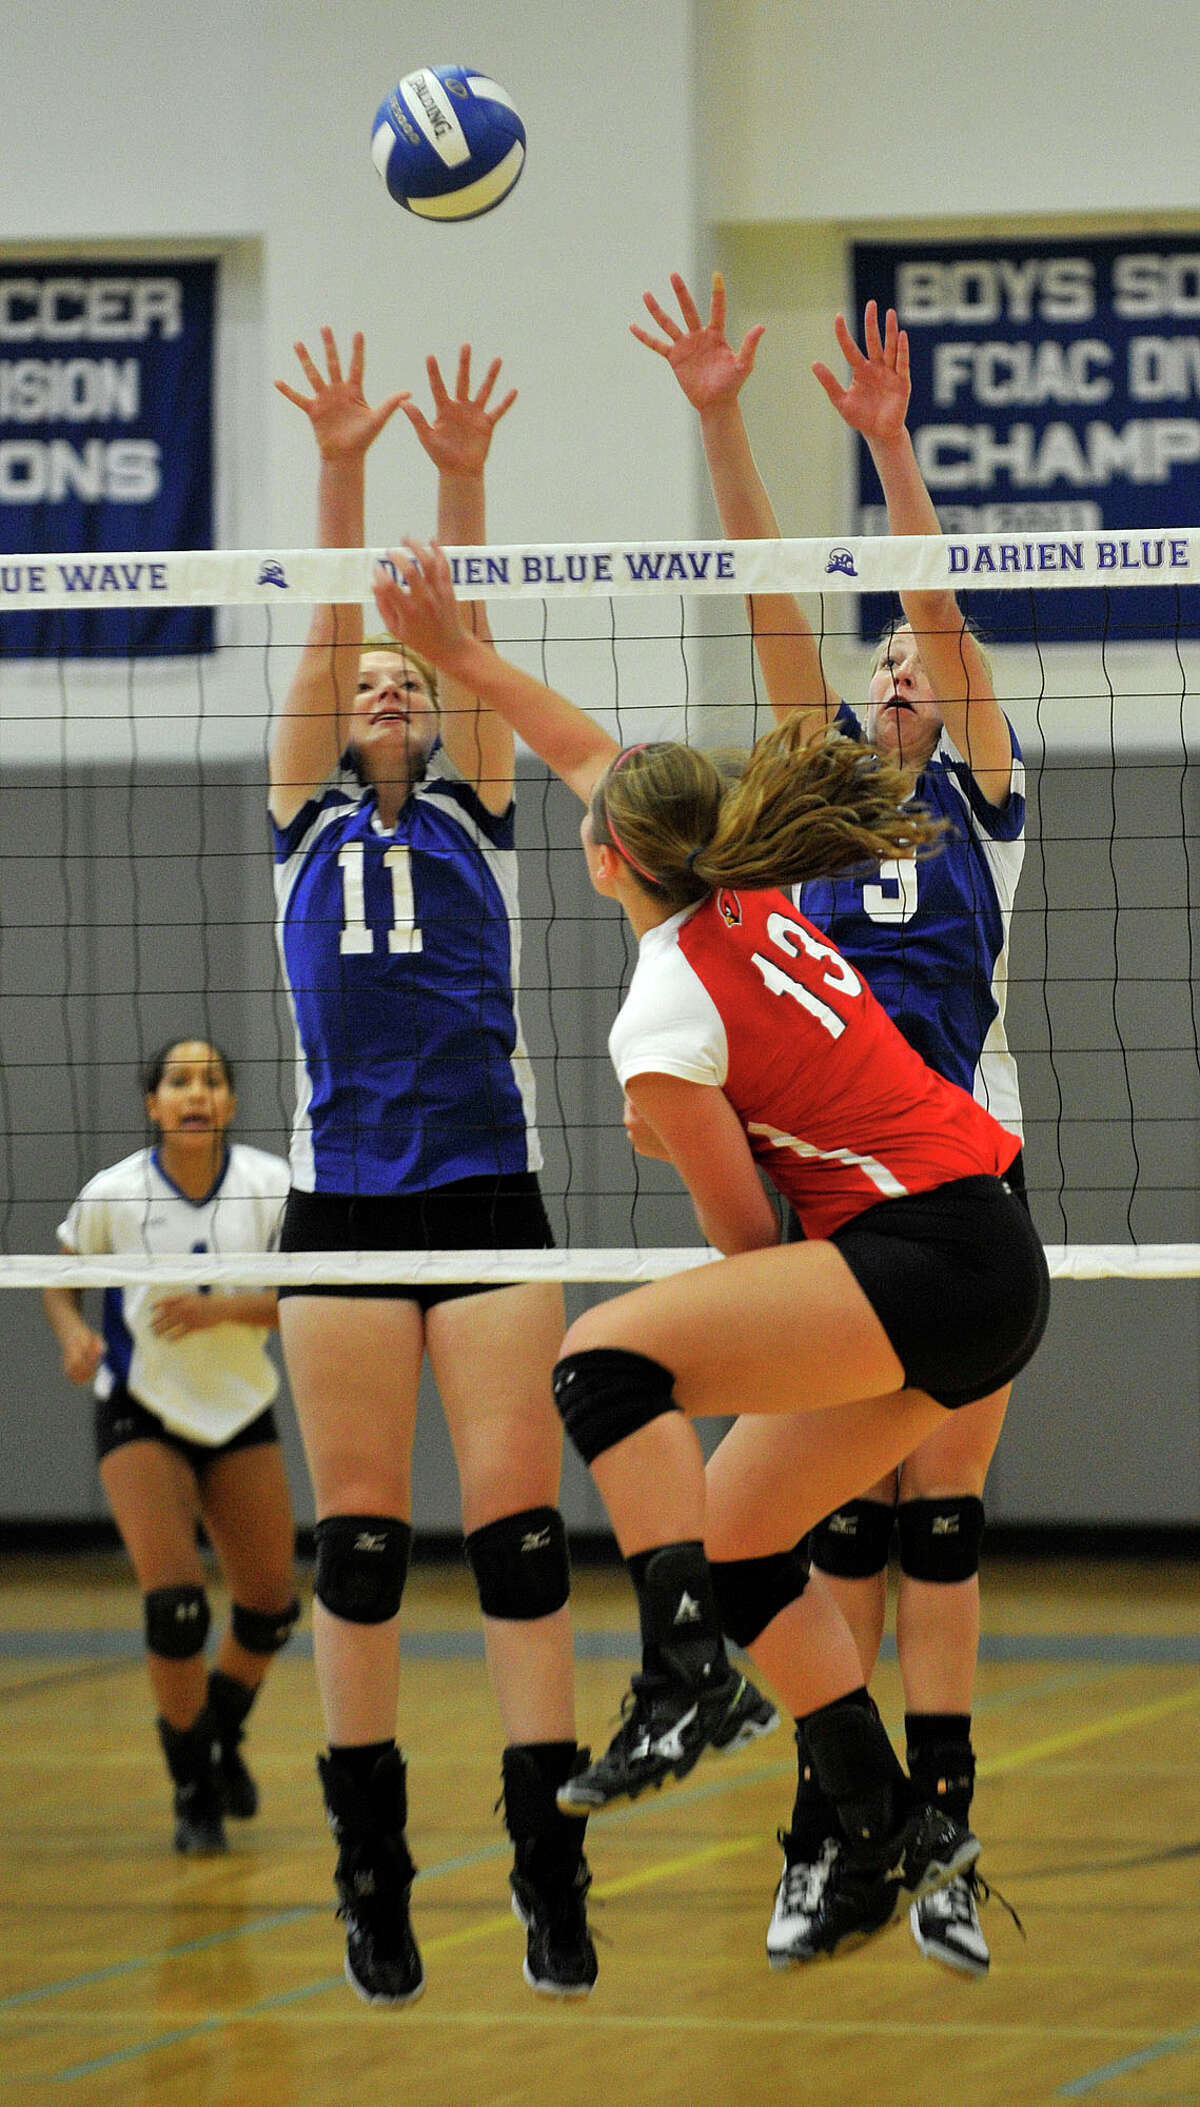 Darien's Claire Naughton, left, and Izzy Taylor attempt to block the shot of Greenwich's Heather Desino during their game at Darien High School in Darien, Conn., on Wednesday, Oct. 9, 2013. Greenwich won, 3-1.